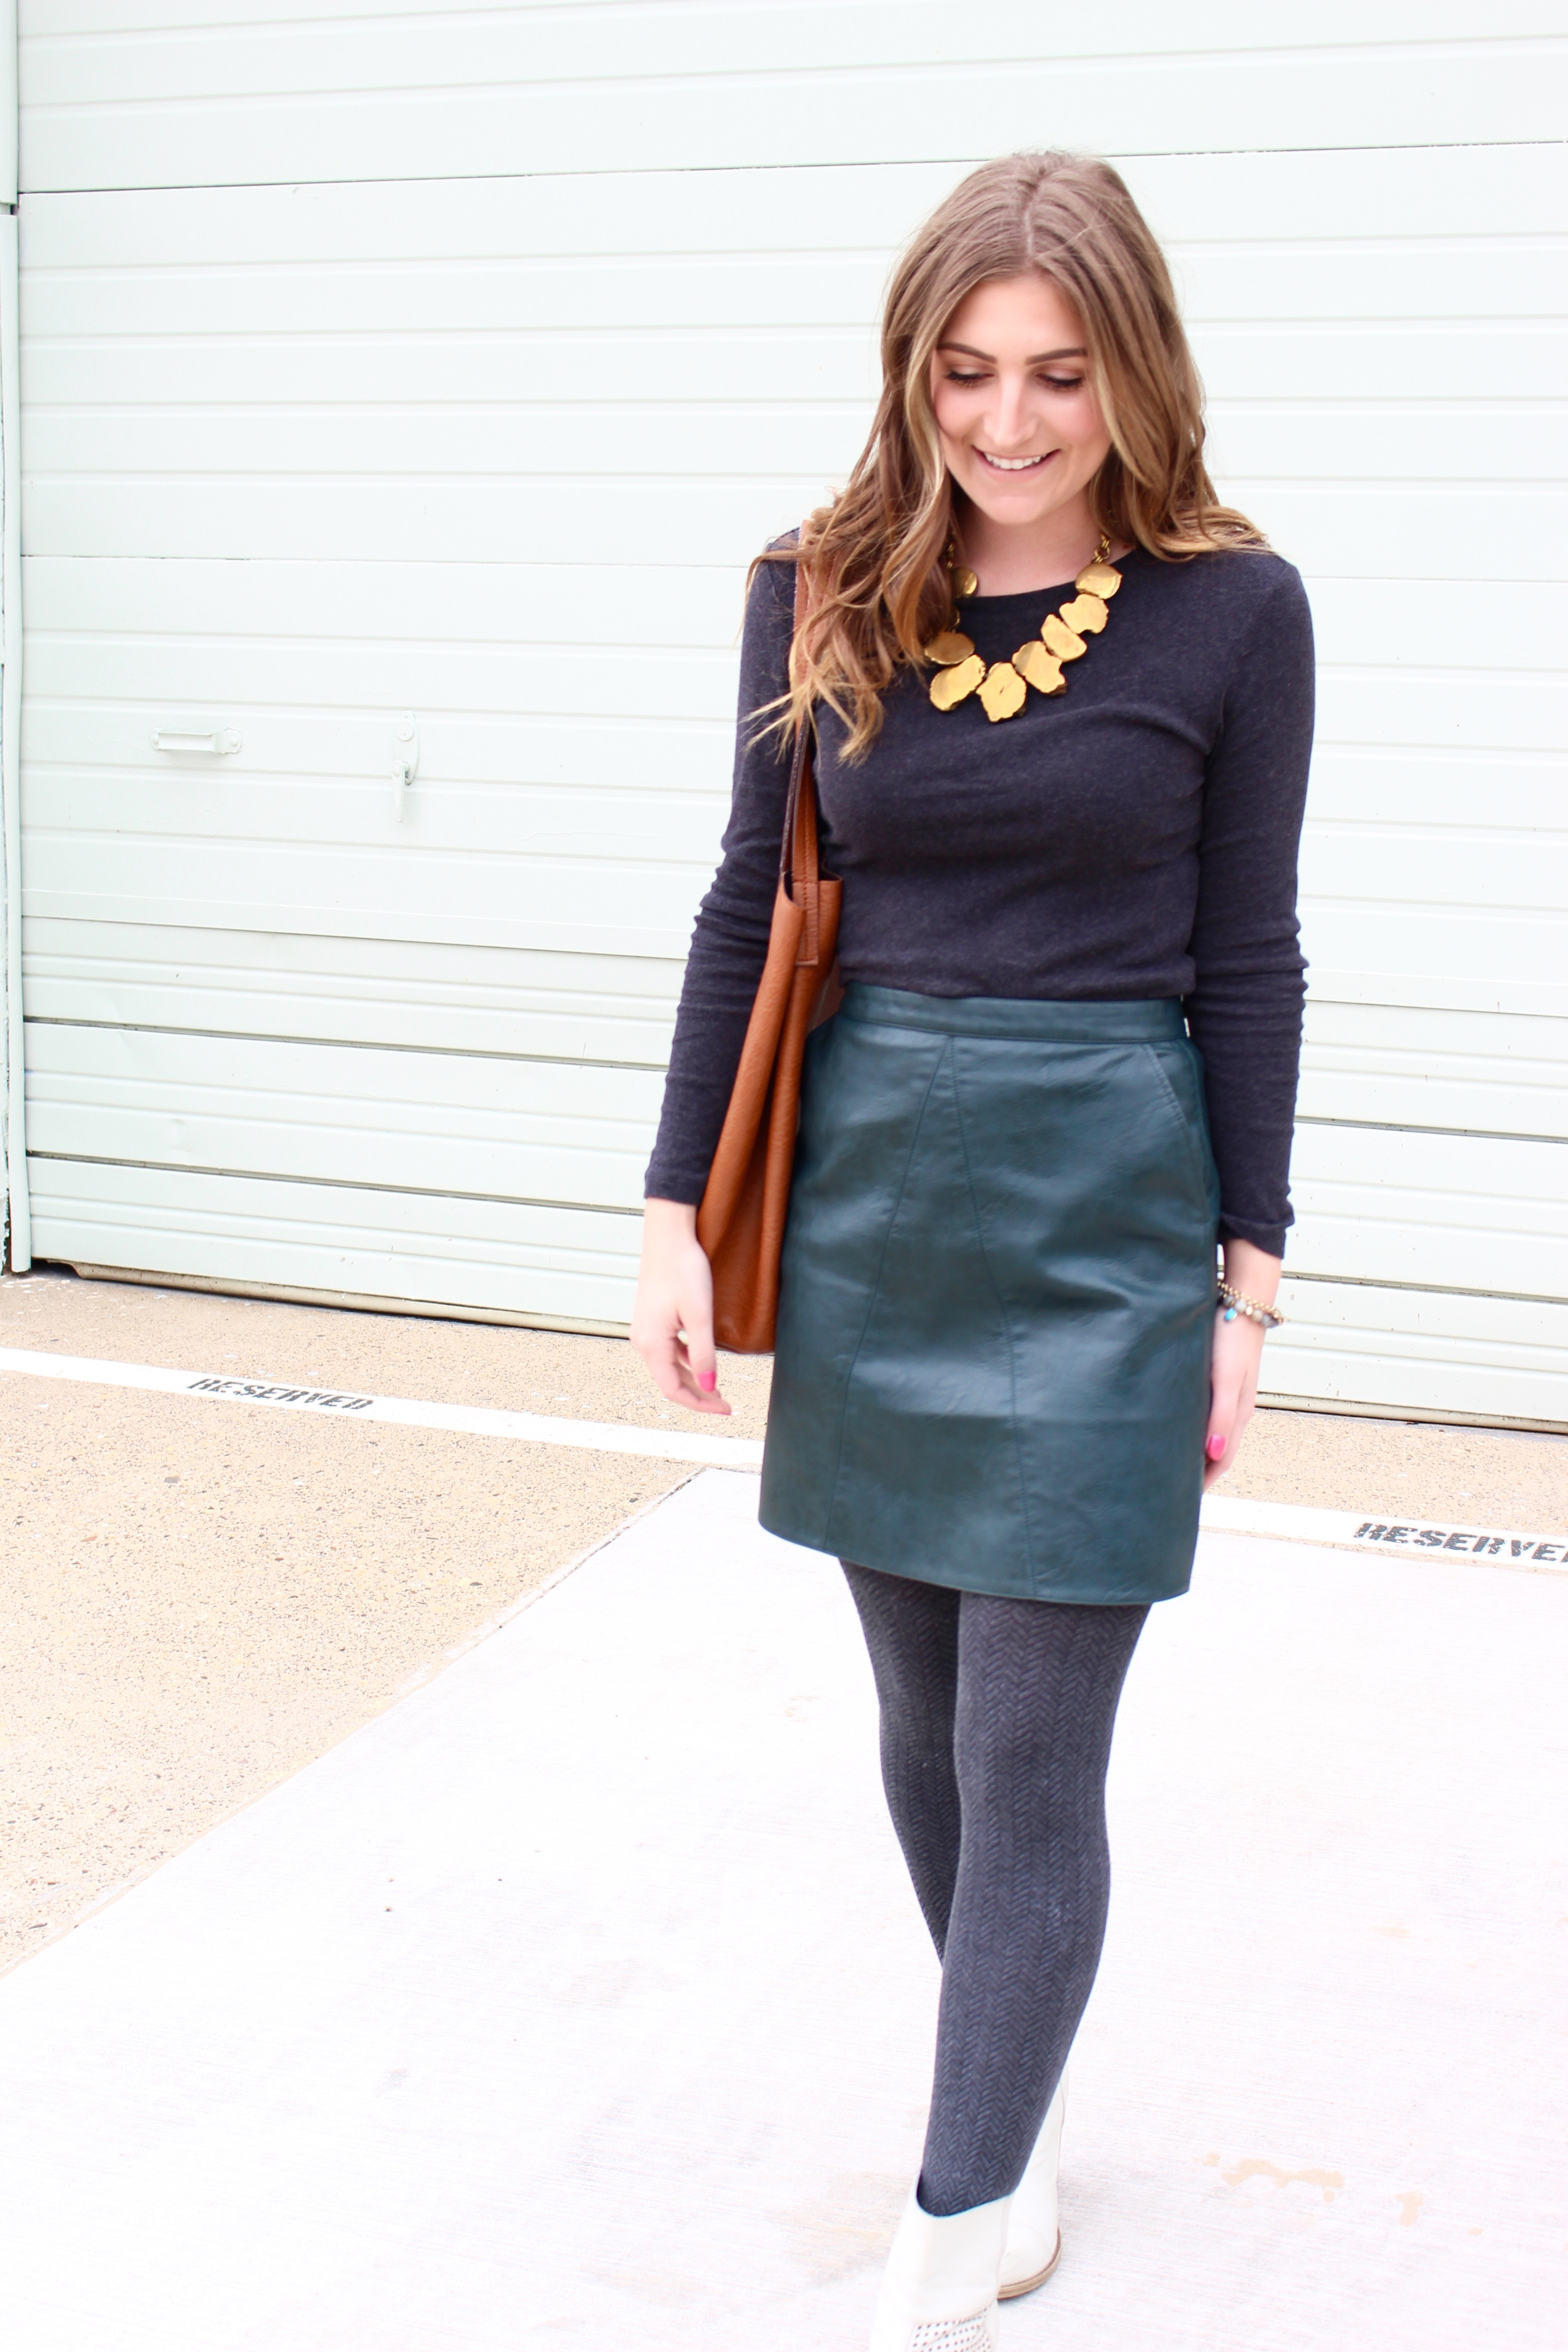 ootd for a style outfit - Green Leather Skirt by popular Texas fashion blogger Audrey Madison Stowe